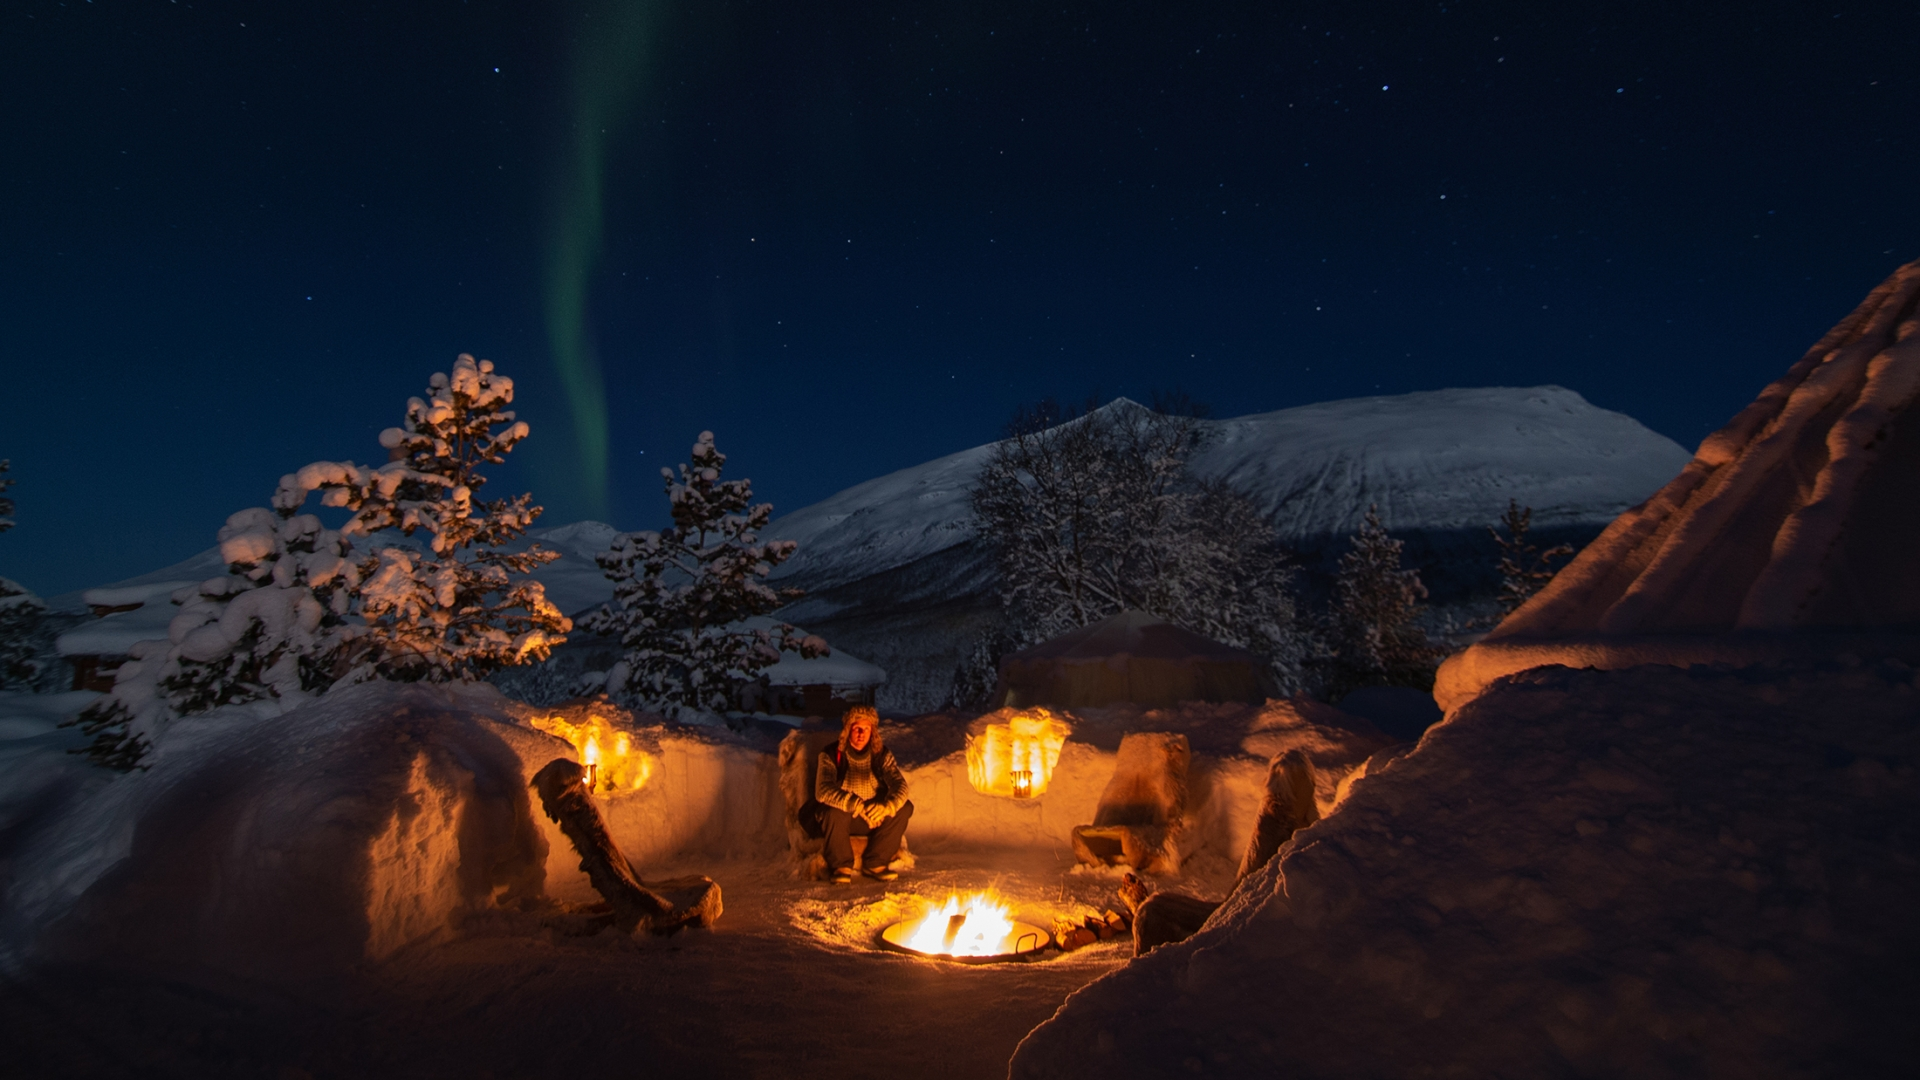 People around bonfire under the Northern Lights